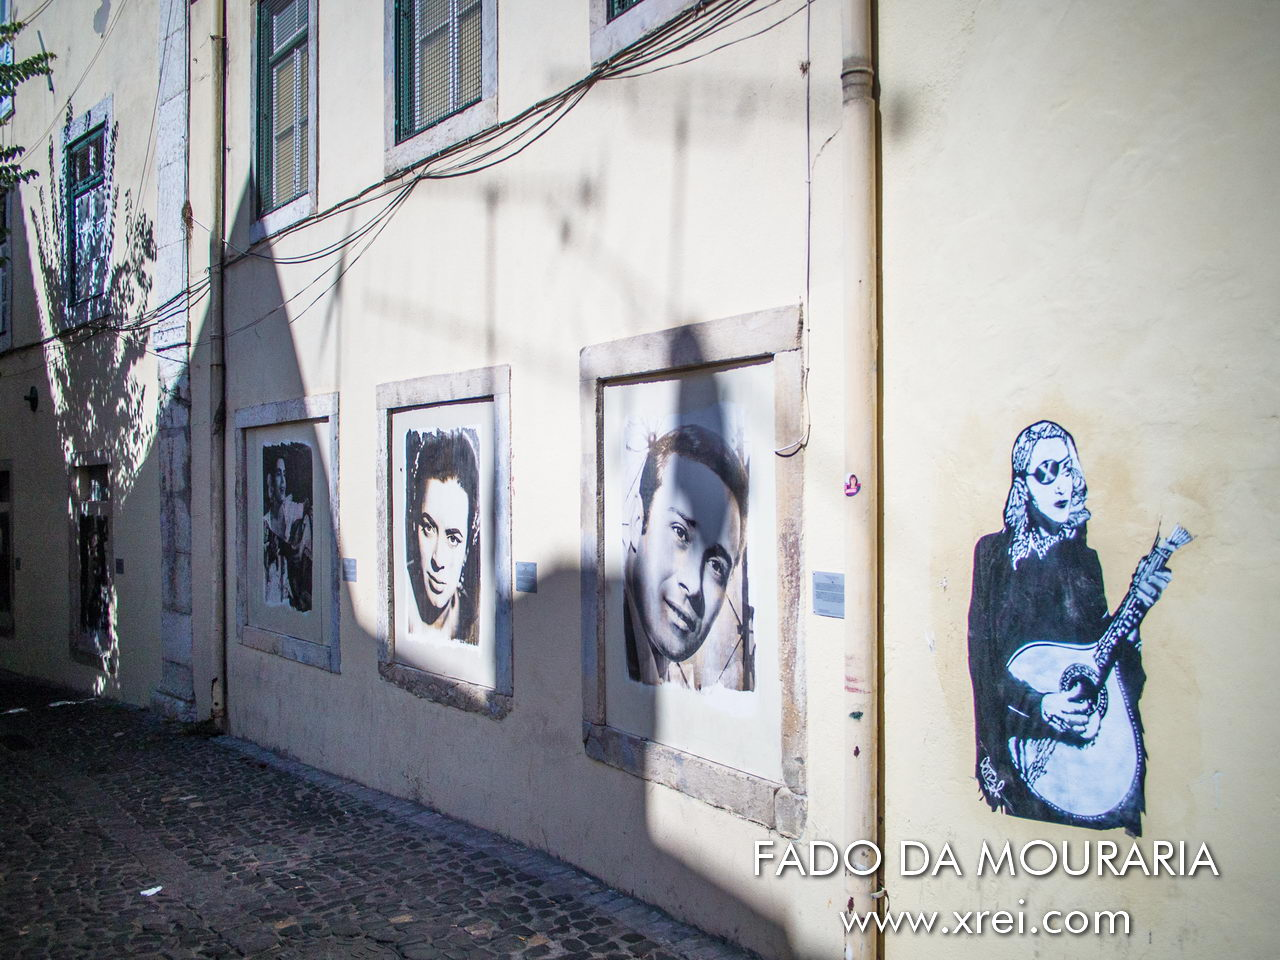 Mouraria is synonymous with Fado, it was here that some of the great characters related to the origin of Fado in Portugal lived, namely Maria Severa, the first famous fado singer, Fernando Maurício, the king of Mado fado, and many others